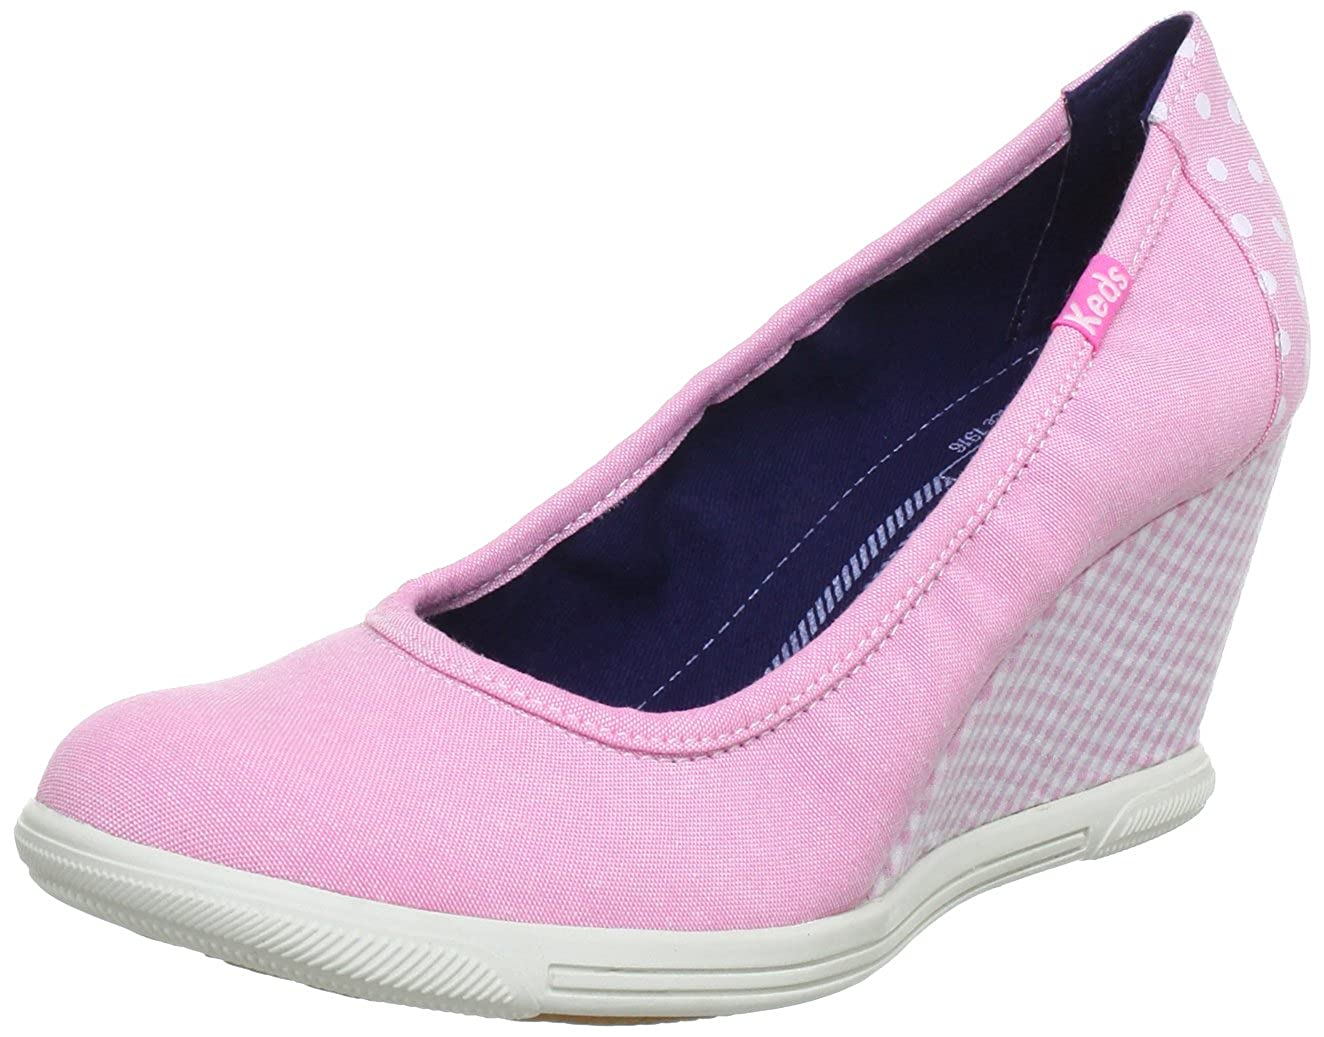 outlet store 48253 7139d Keds Womens Wedge Skimmer Dot Gingham Pumps Pink Pink (pink normal) Size   37  Amazon.co.uk  Shoes   Bags